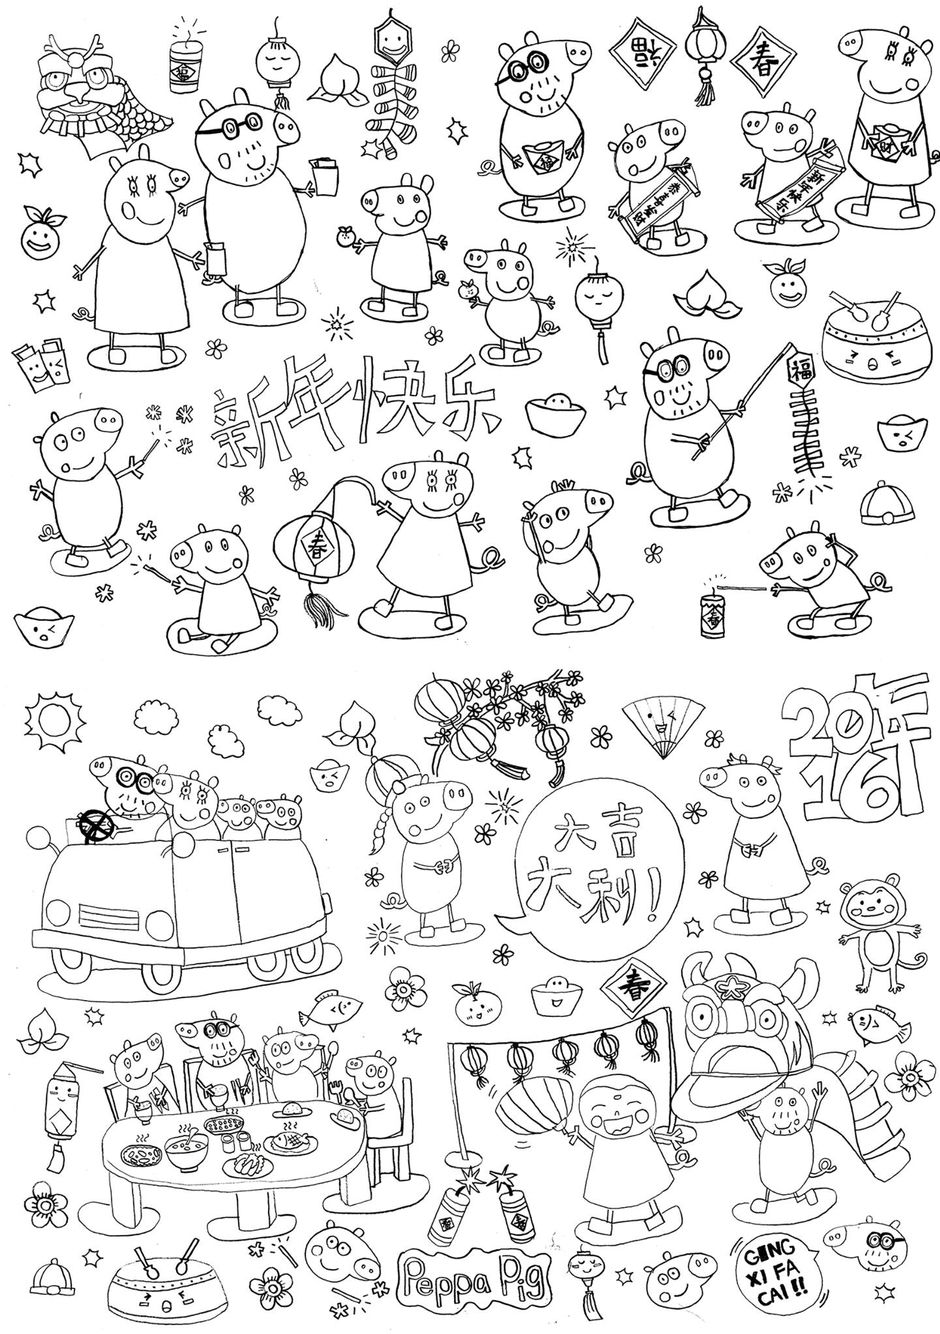 pegga pig chinese new year theme a5 colouring page artwork